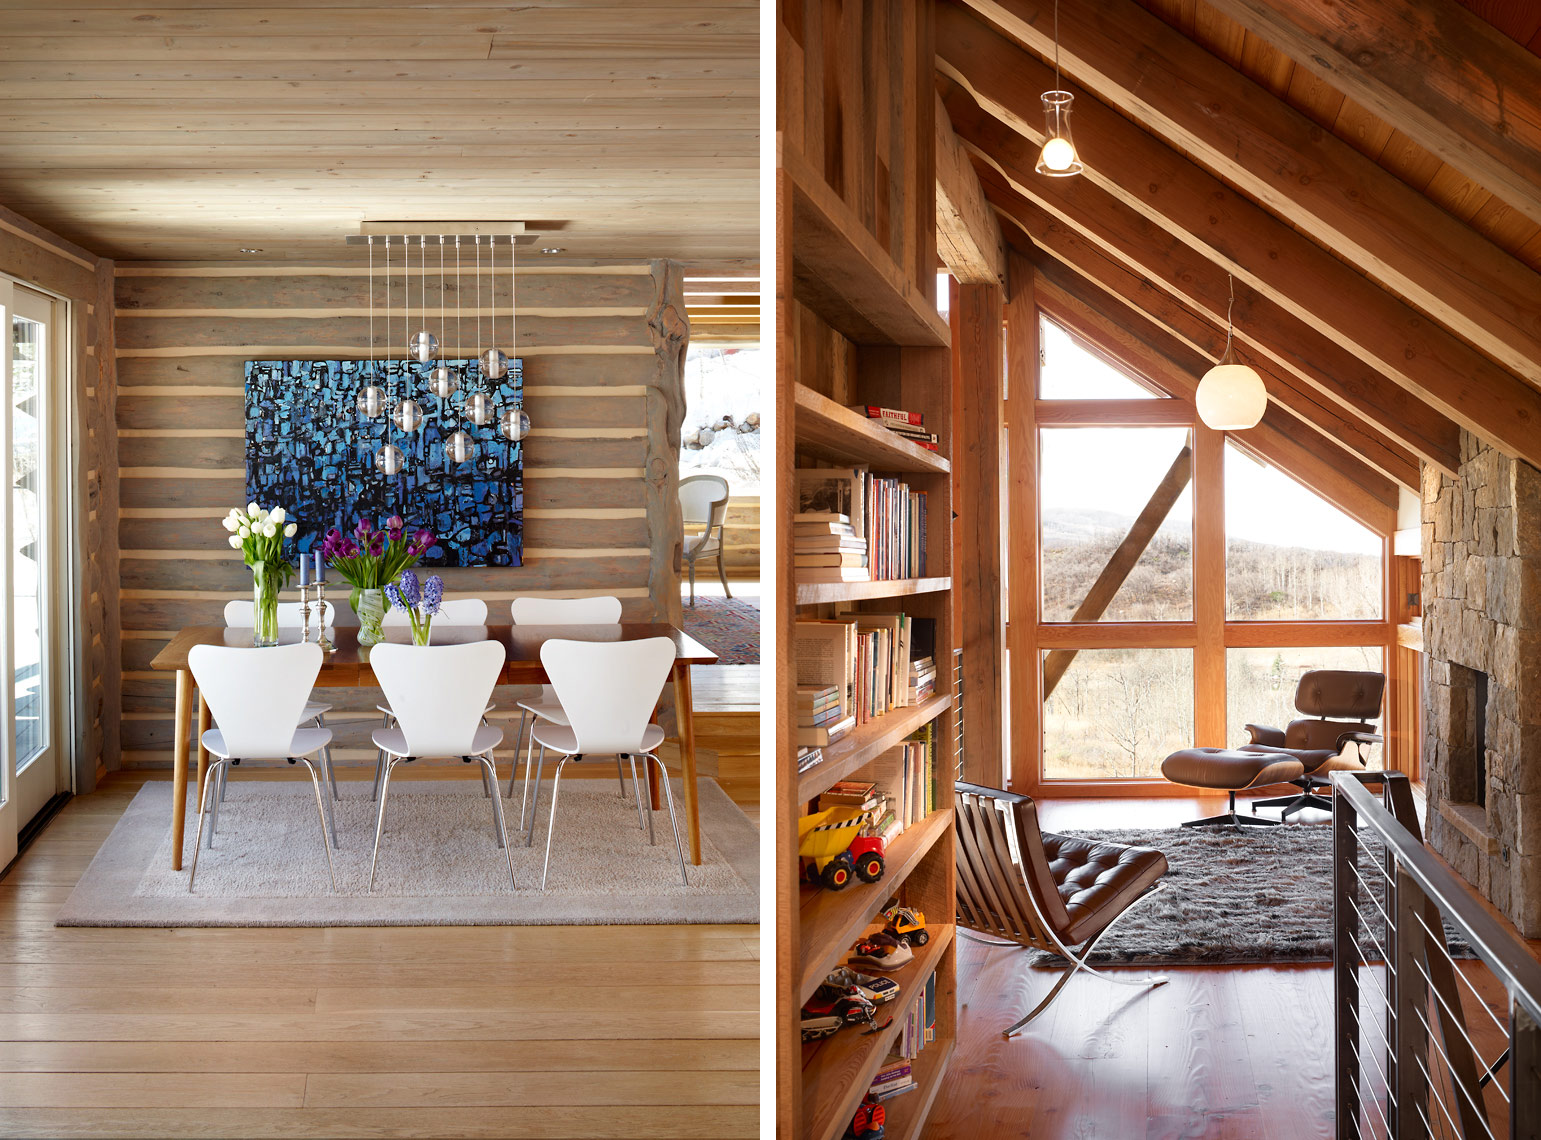 Modern Mountain Cabin, Colorado David Patterson Photographer of Architecture + Interiors, Denver, Colorado, Steamboat Springs, Vail, Aspen